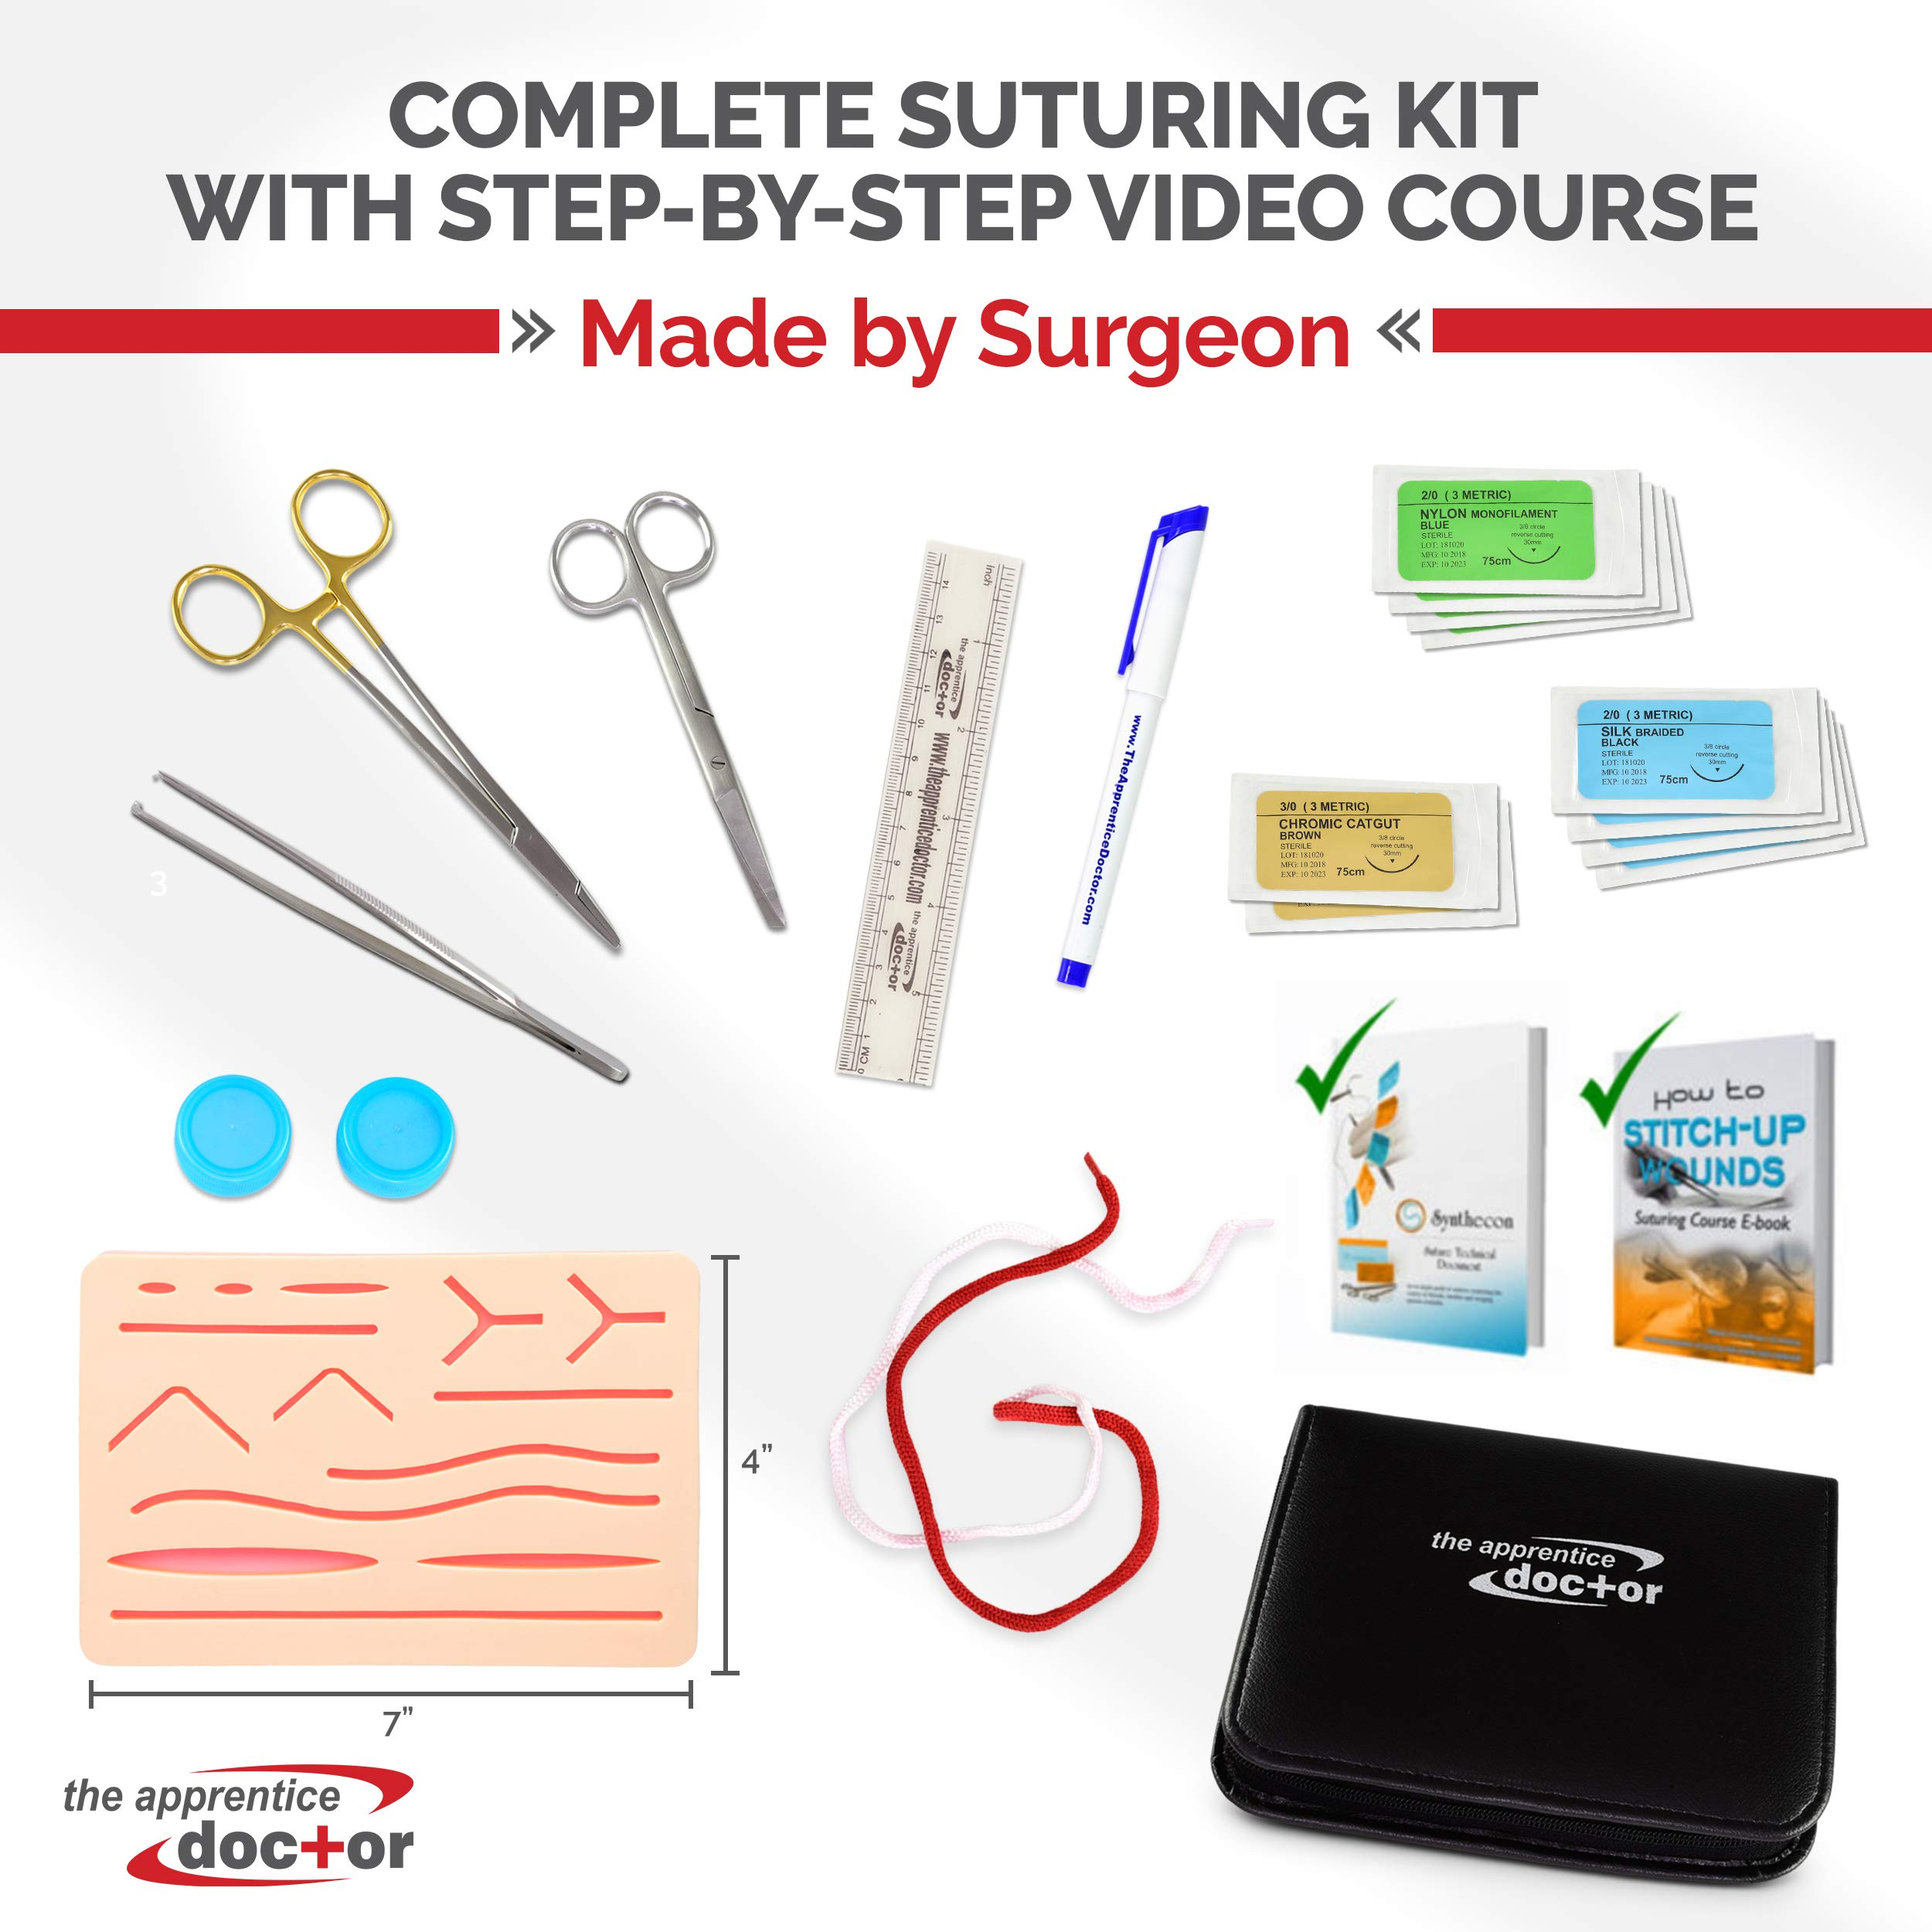 Complete Suture Practice Kit with Training Course by Surgical Specialist   Perfect for Medical Students, Nurses, Vet Students   All-in-One Solution for Anyone Learning How to Suture. by The Apprentice Doctor